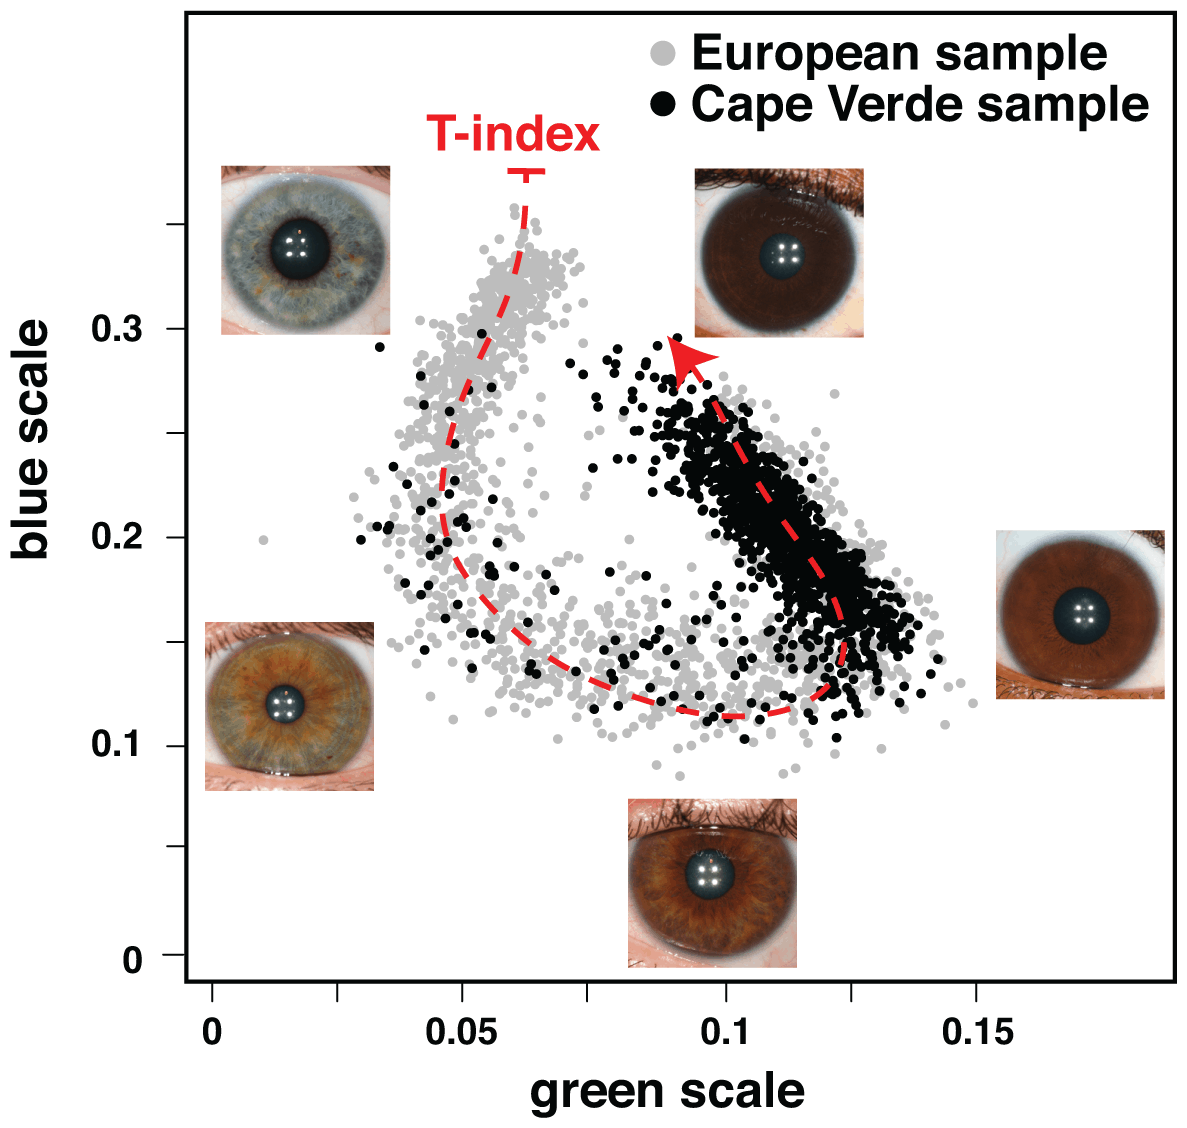 Figure 2. Quantitative assessment of eye color. Plotted are the normalized median values of green (x-axis) and blue (y-axis) levels of each individual's irises. We fitted a principal curve that explains most of the variation in the data (red dashed curve). The T-index is defined by the arc-length from the projection of each point on the curve to the end of the curve that corresponds to the lightest eye color. In the figure are examples of eye photos at their respective position in the T-index curve. doi:10.1371/journal.pgen.1003372.g002